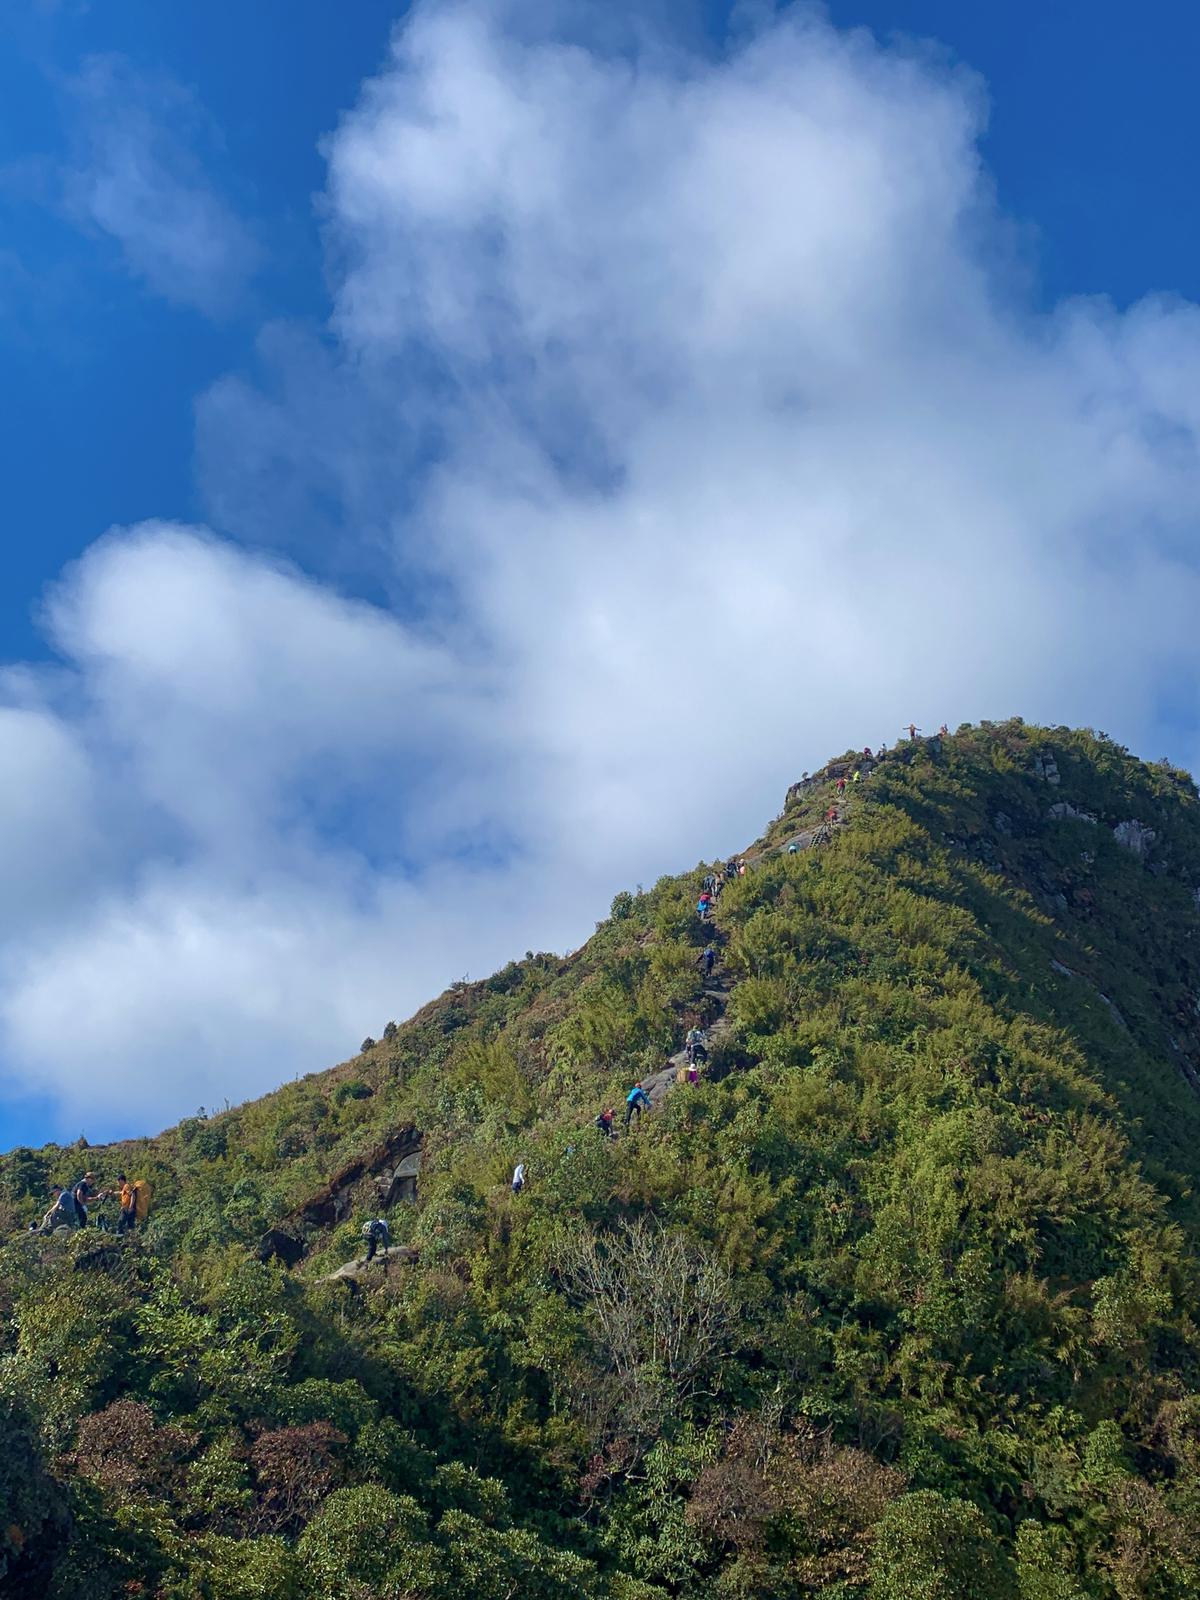 ky quan san a challenging but imposing peak for adventure lovers